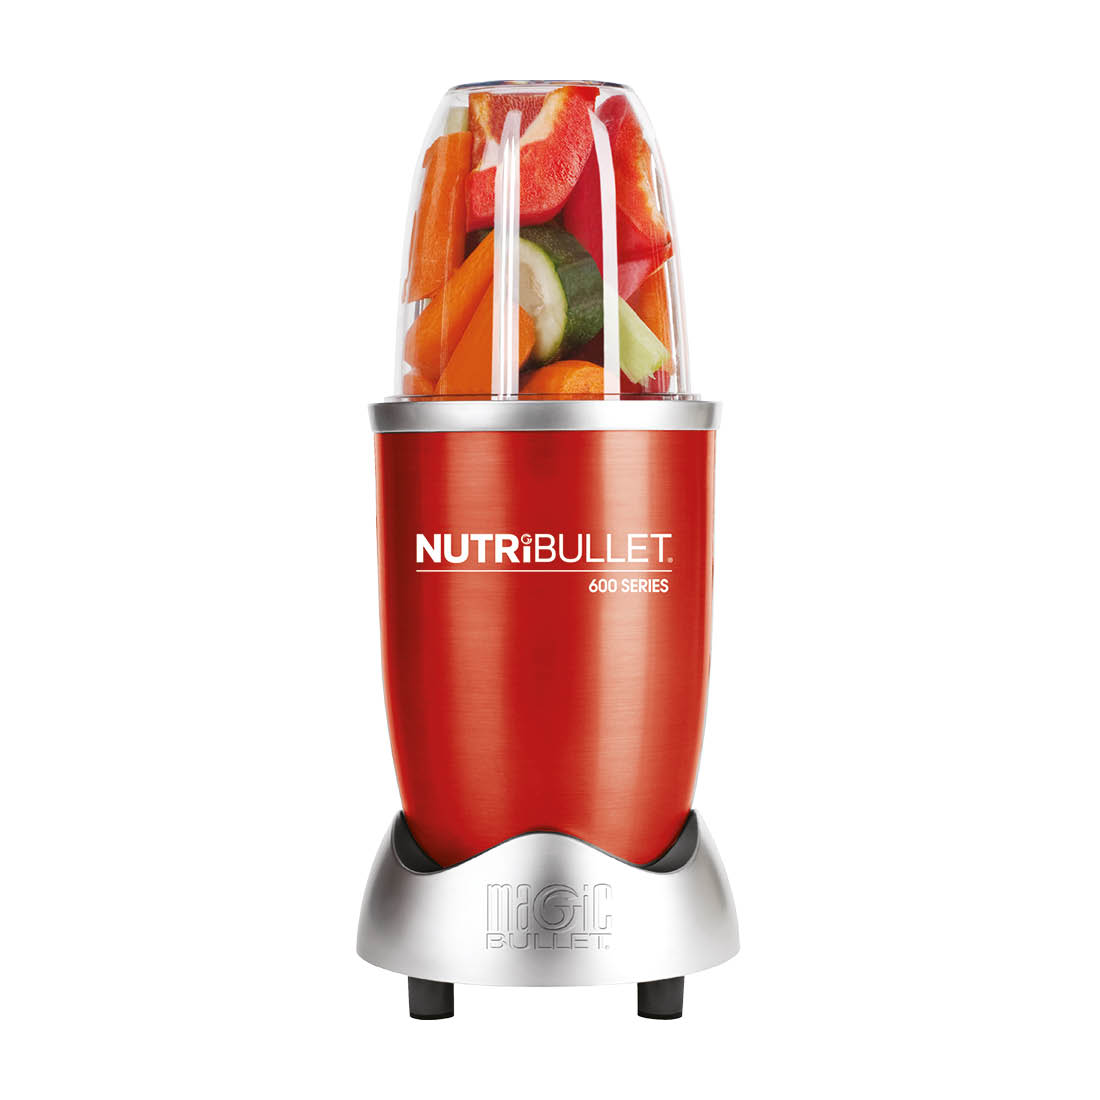 An image of Nutribullet 8pc - Red